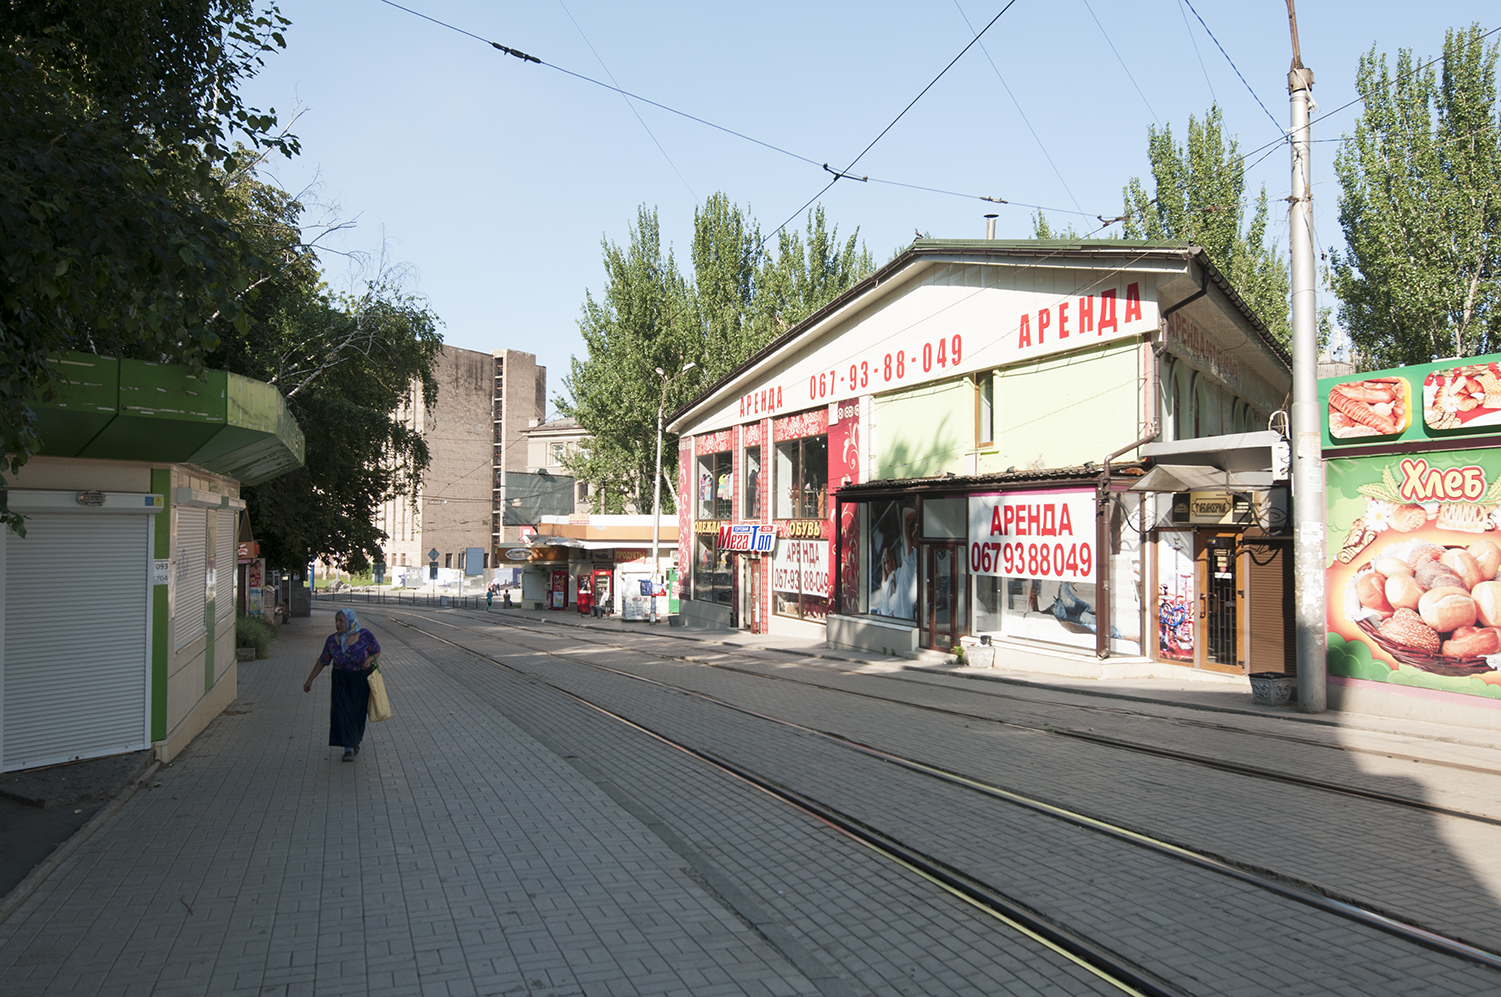 Building up for sale in the center of Donetsk - 26th July